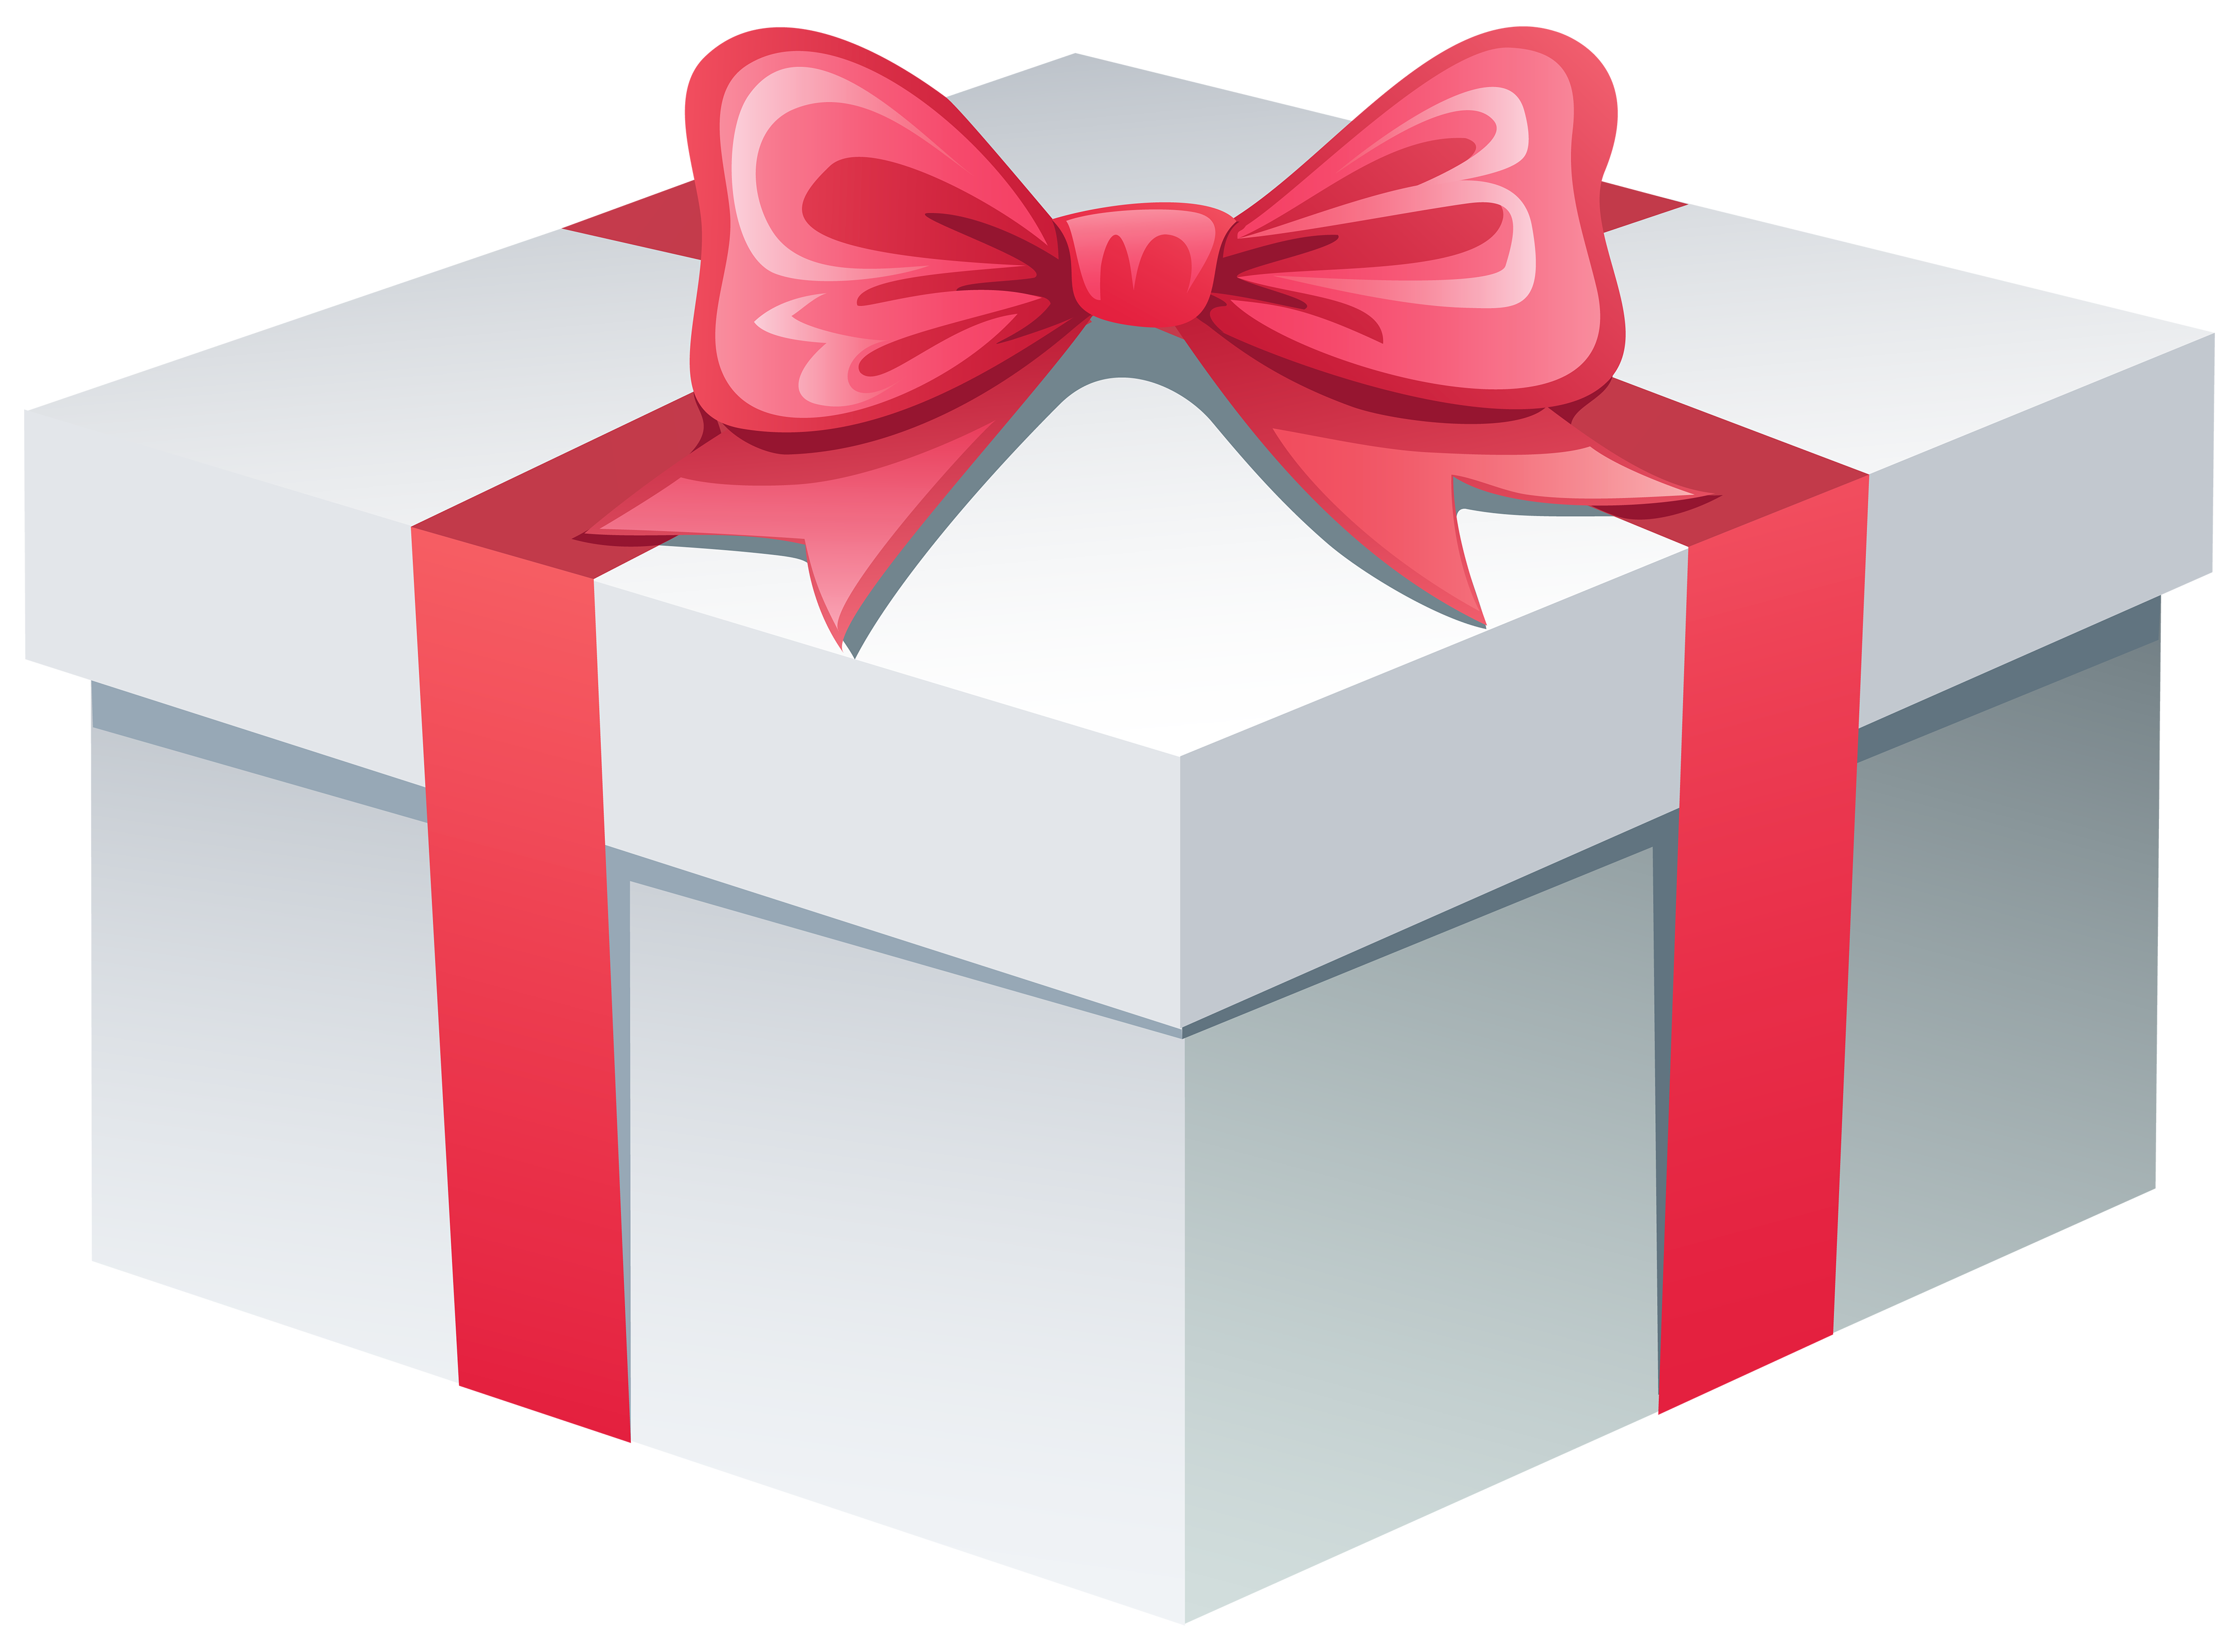 Clipart png gift. Box best web